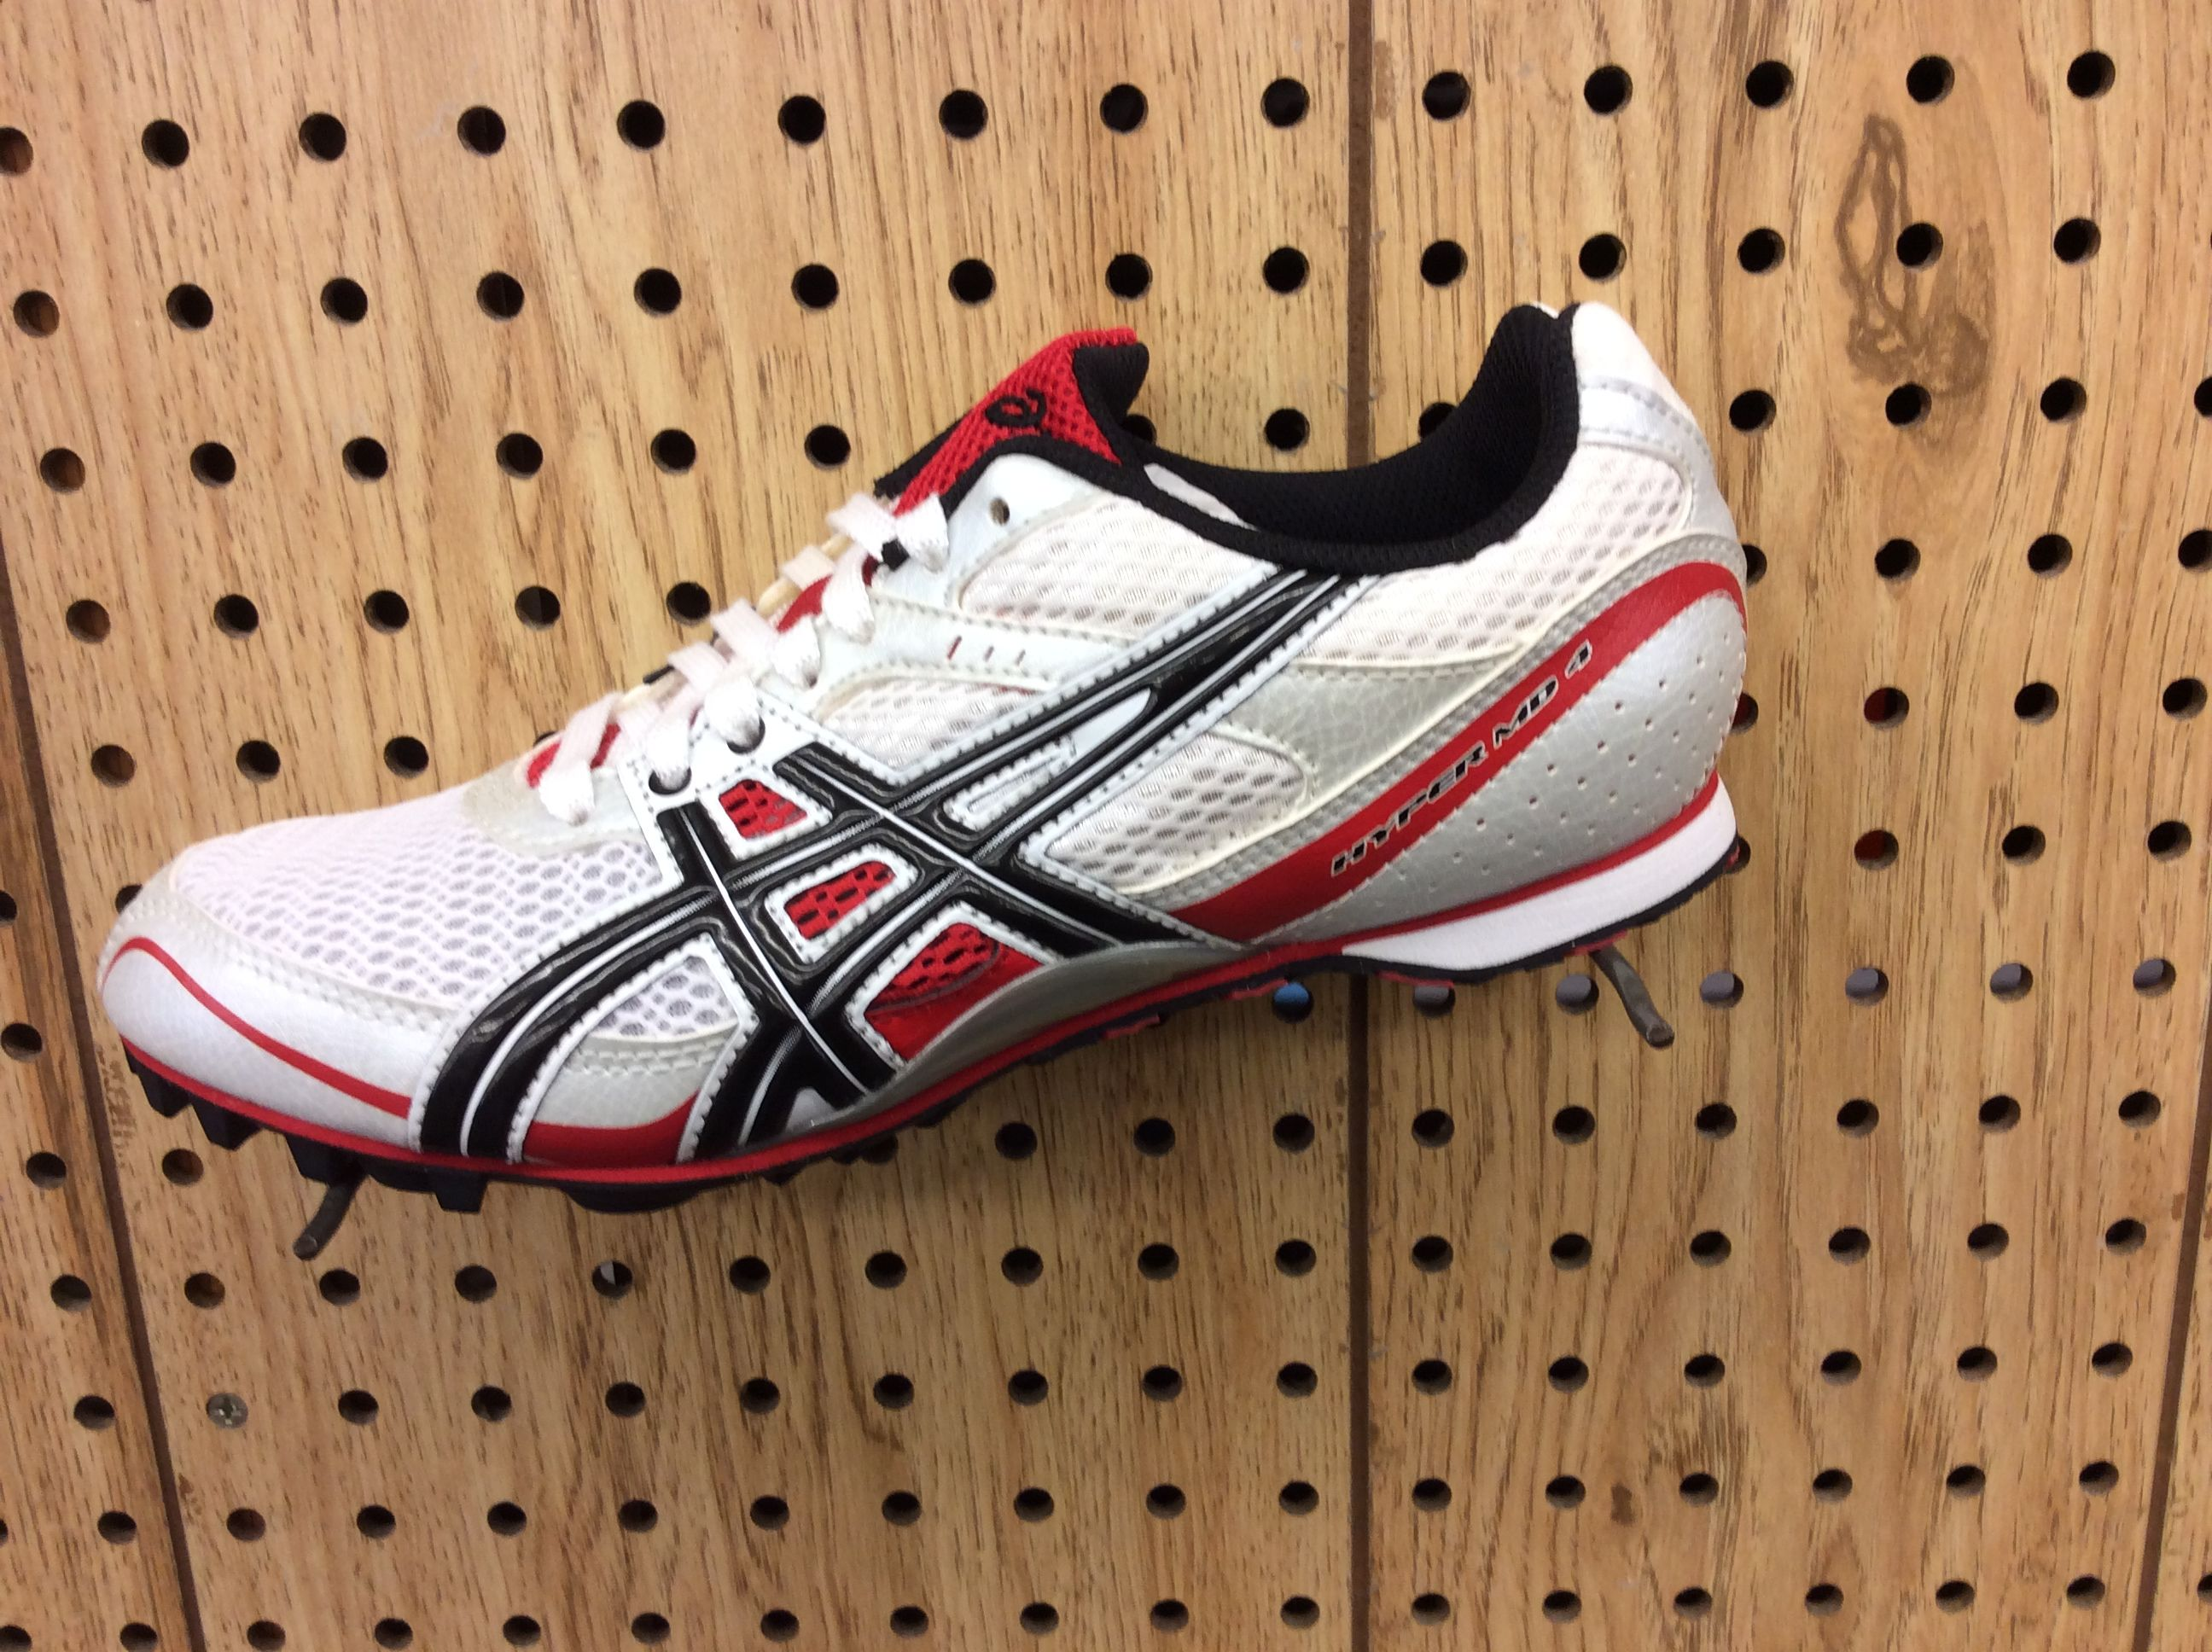 Asics Hyper MD 4 track spikes, White, black and red track spikes